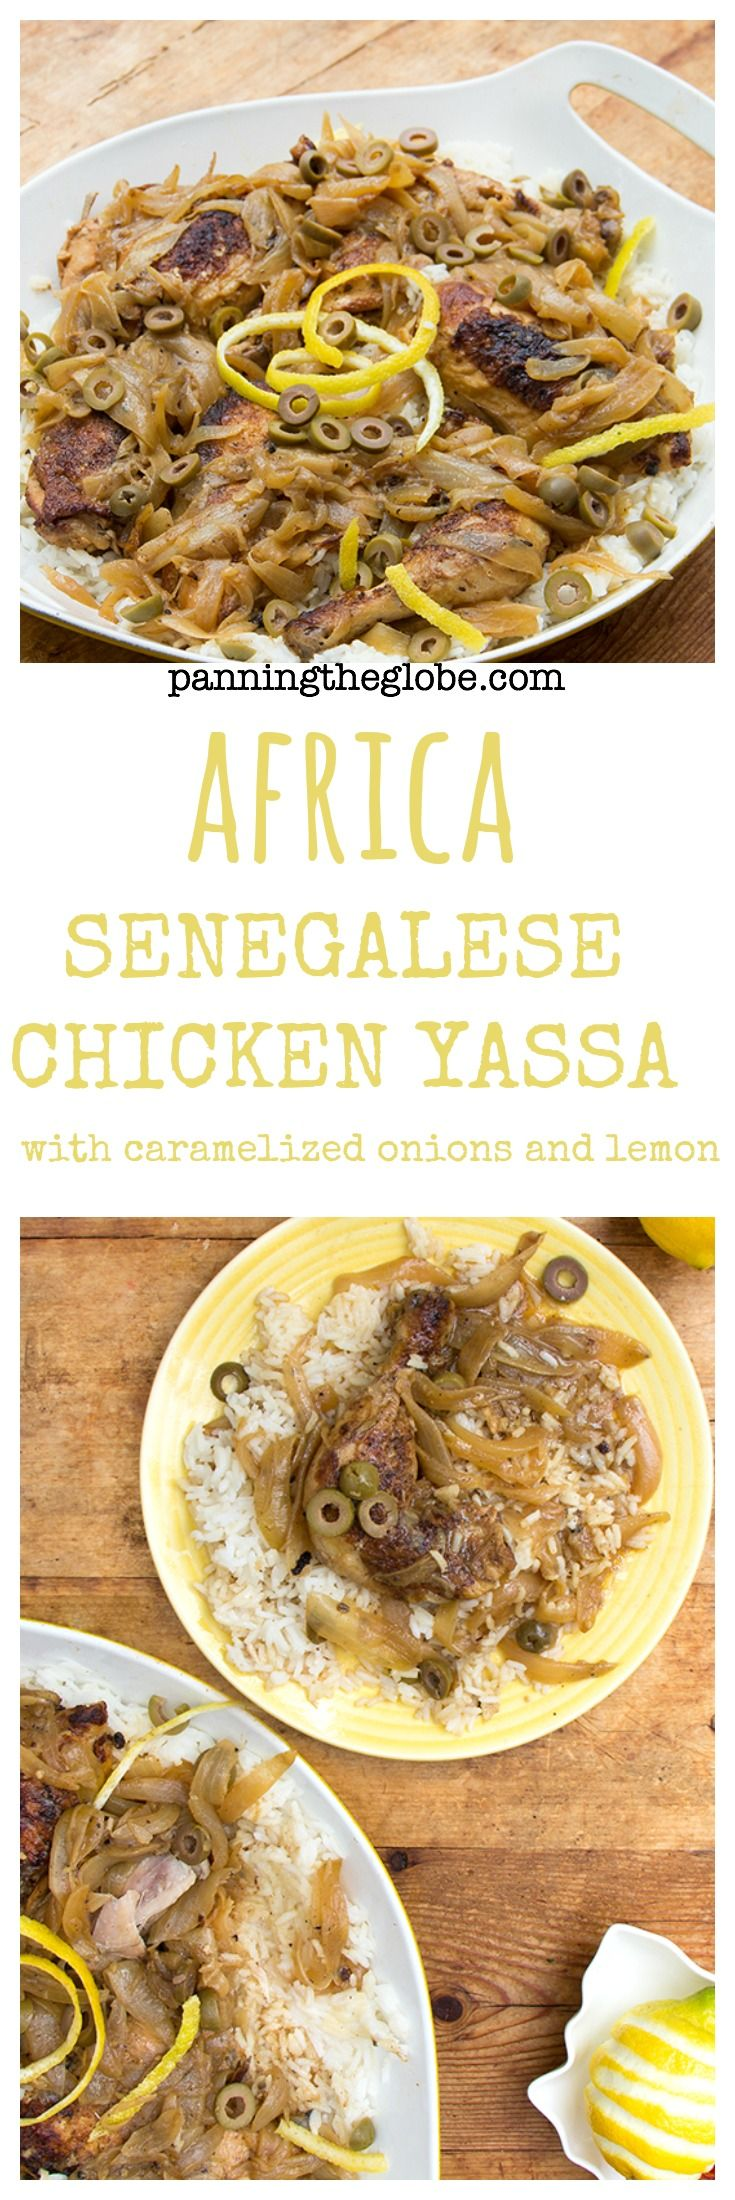 Lemony Chicken with Caramelized Onions. A recipe for the famously delicious West African Chicken Yassa.